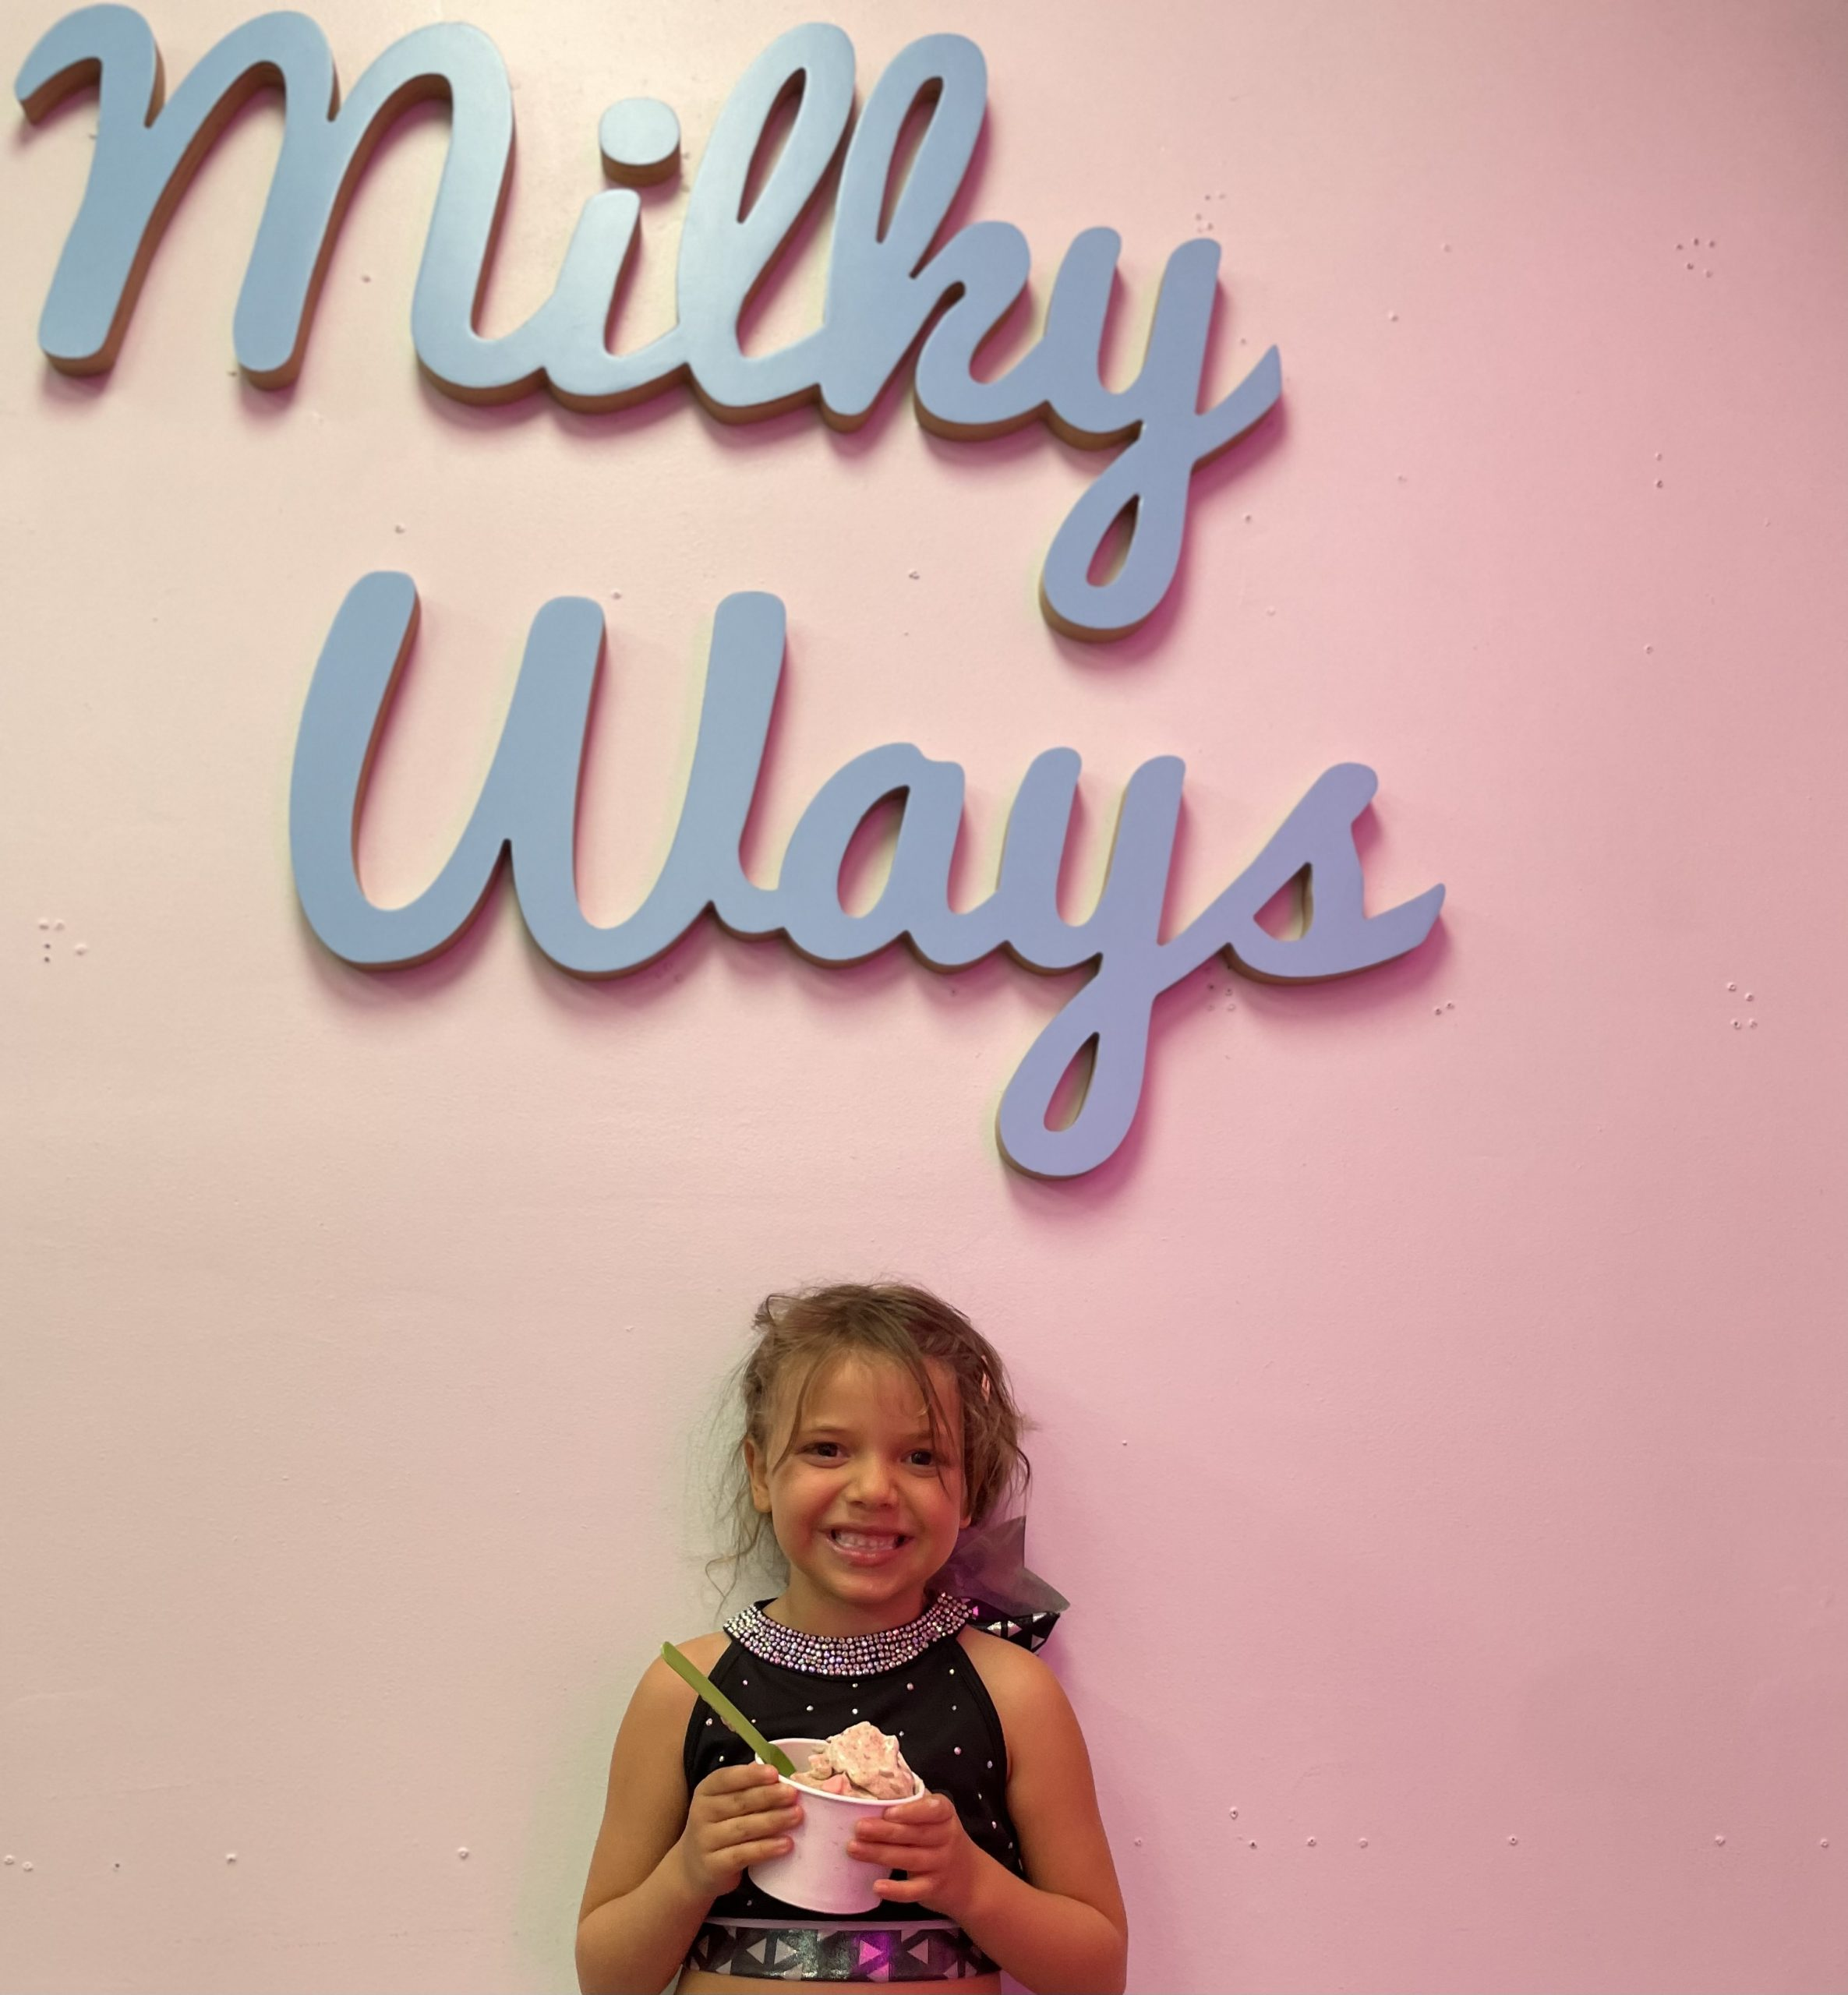 Best Ice Cream Shops in Miami to Help You Satisfy Your Sweet Tooth Miami Mom Collective milky ways